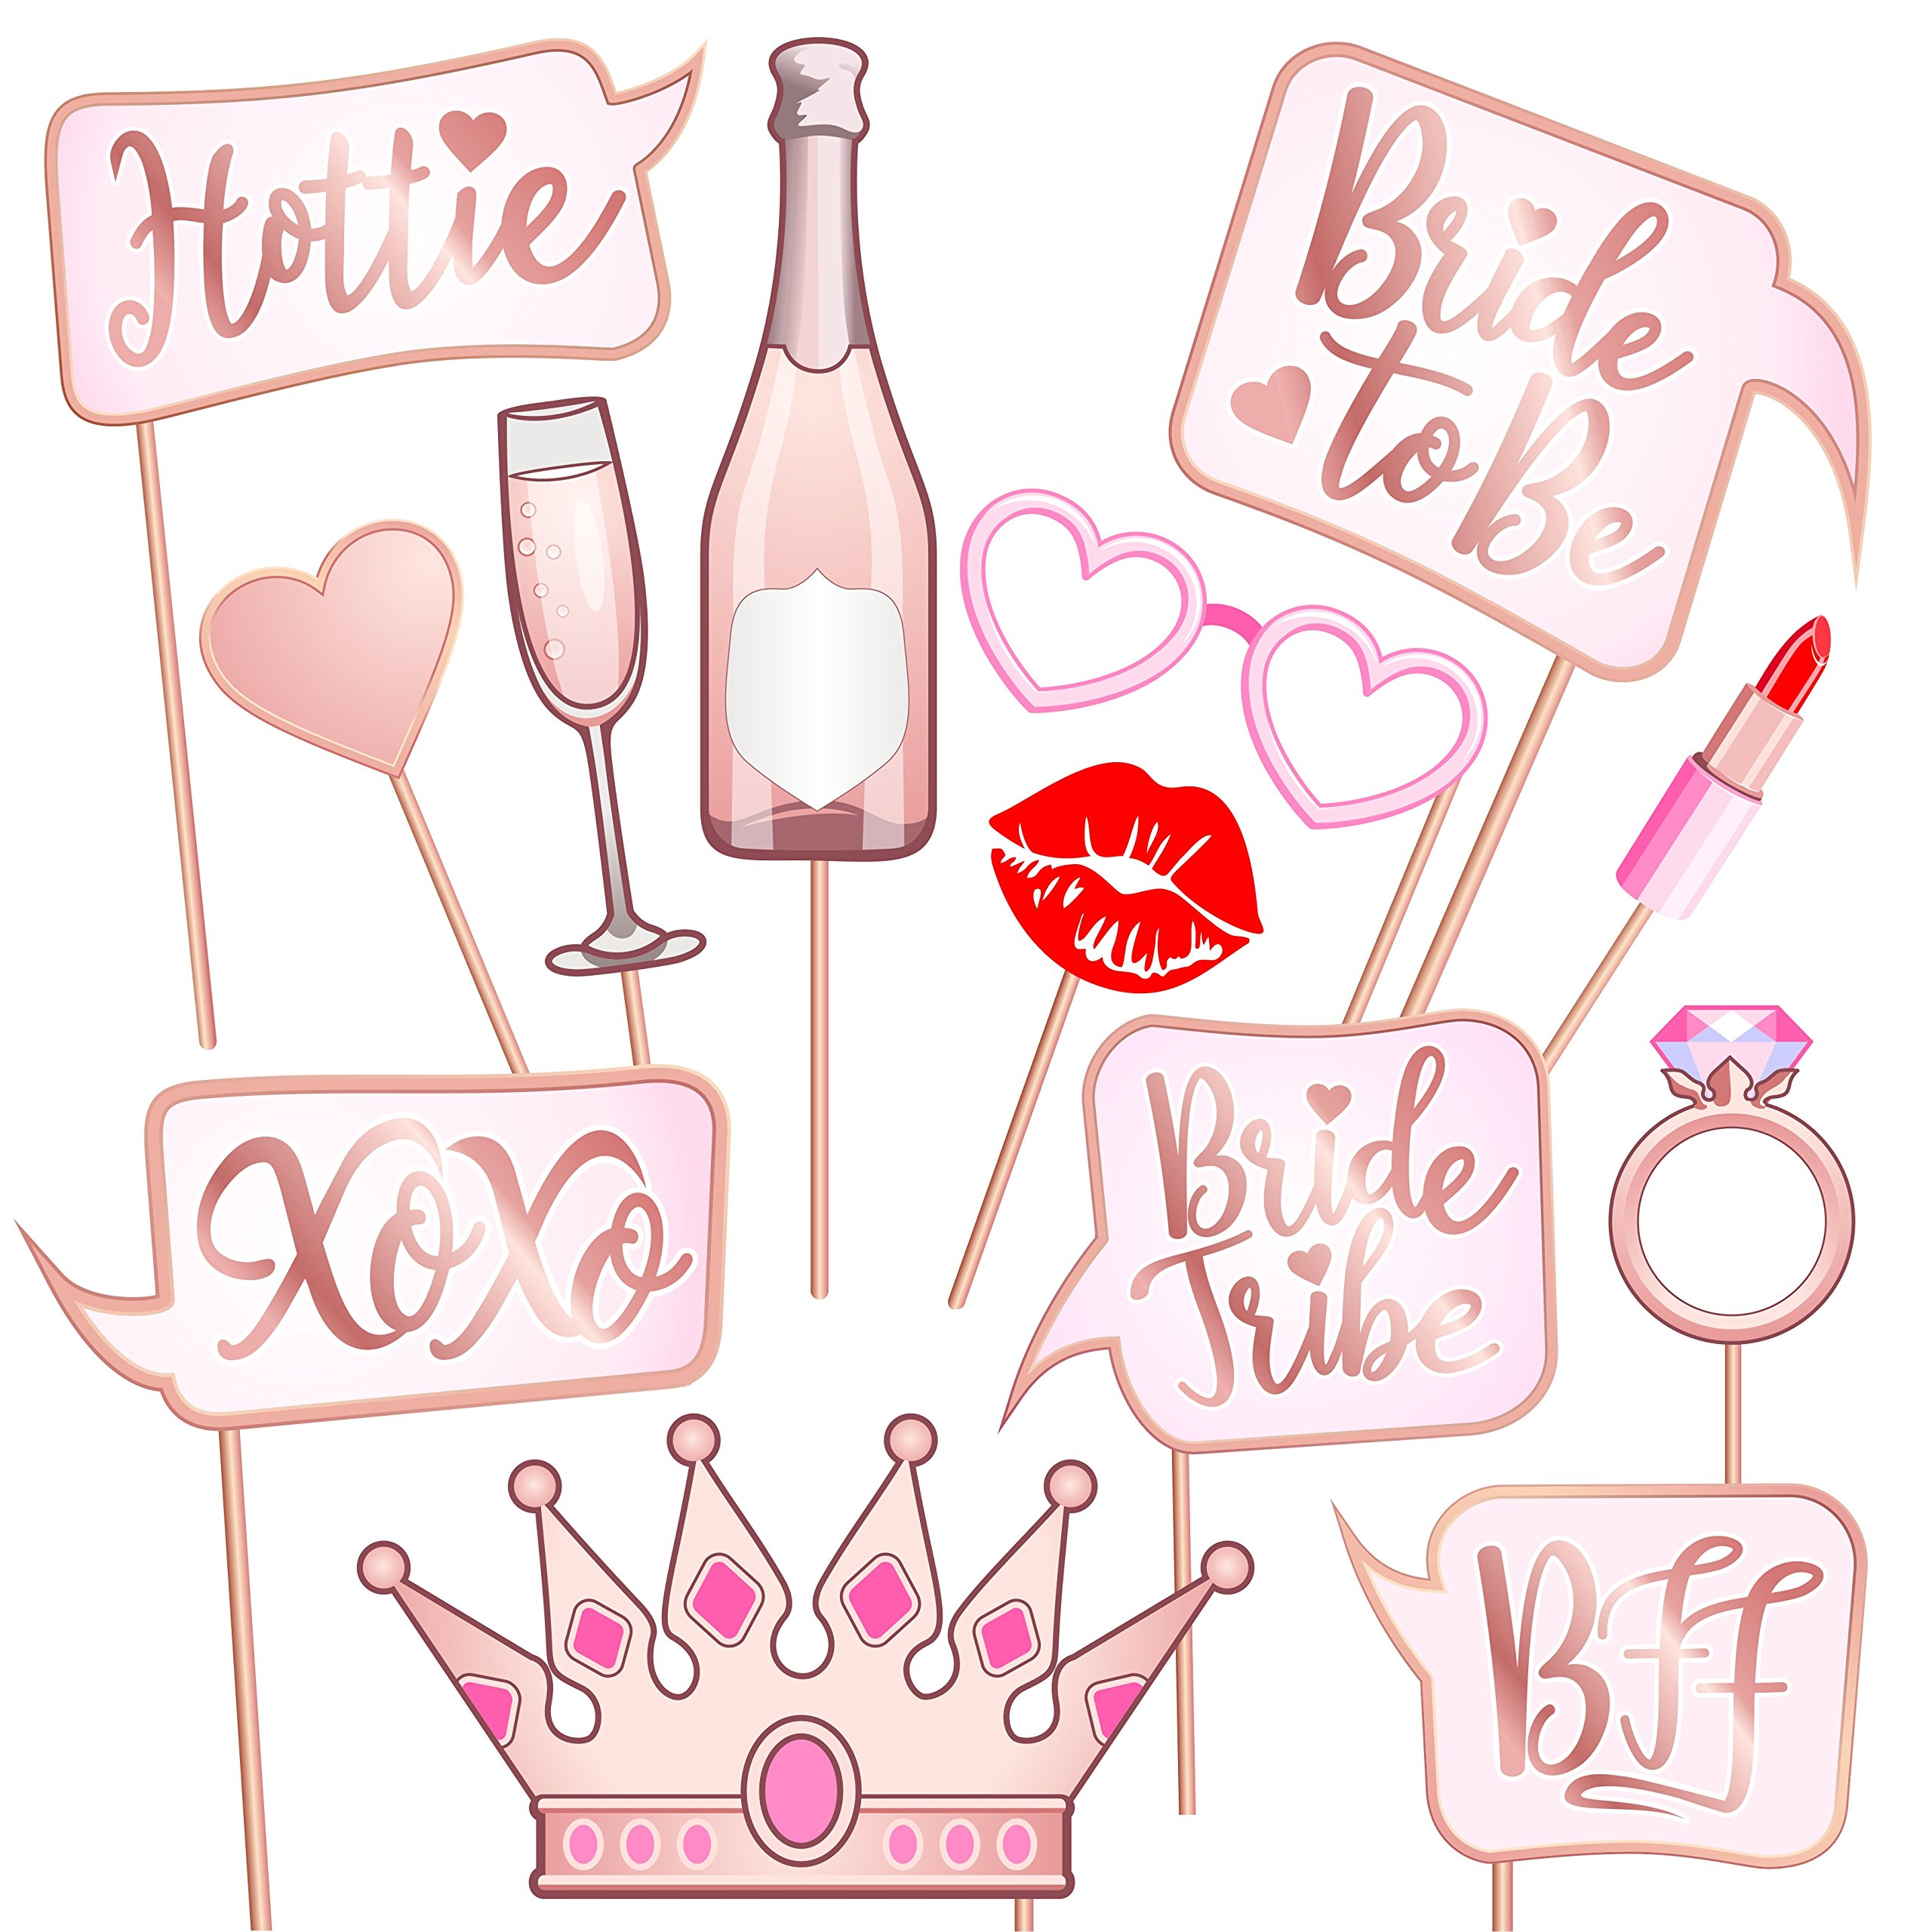 Rose Gold Pink Bridal Shower Photo Booth Props - Fun Bachelorette Party Signs - Make The Perfect Selfies Bride to Be, Bride Tribe - Photobooth Prop Sticks Engagement, Wedding Girls Night